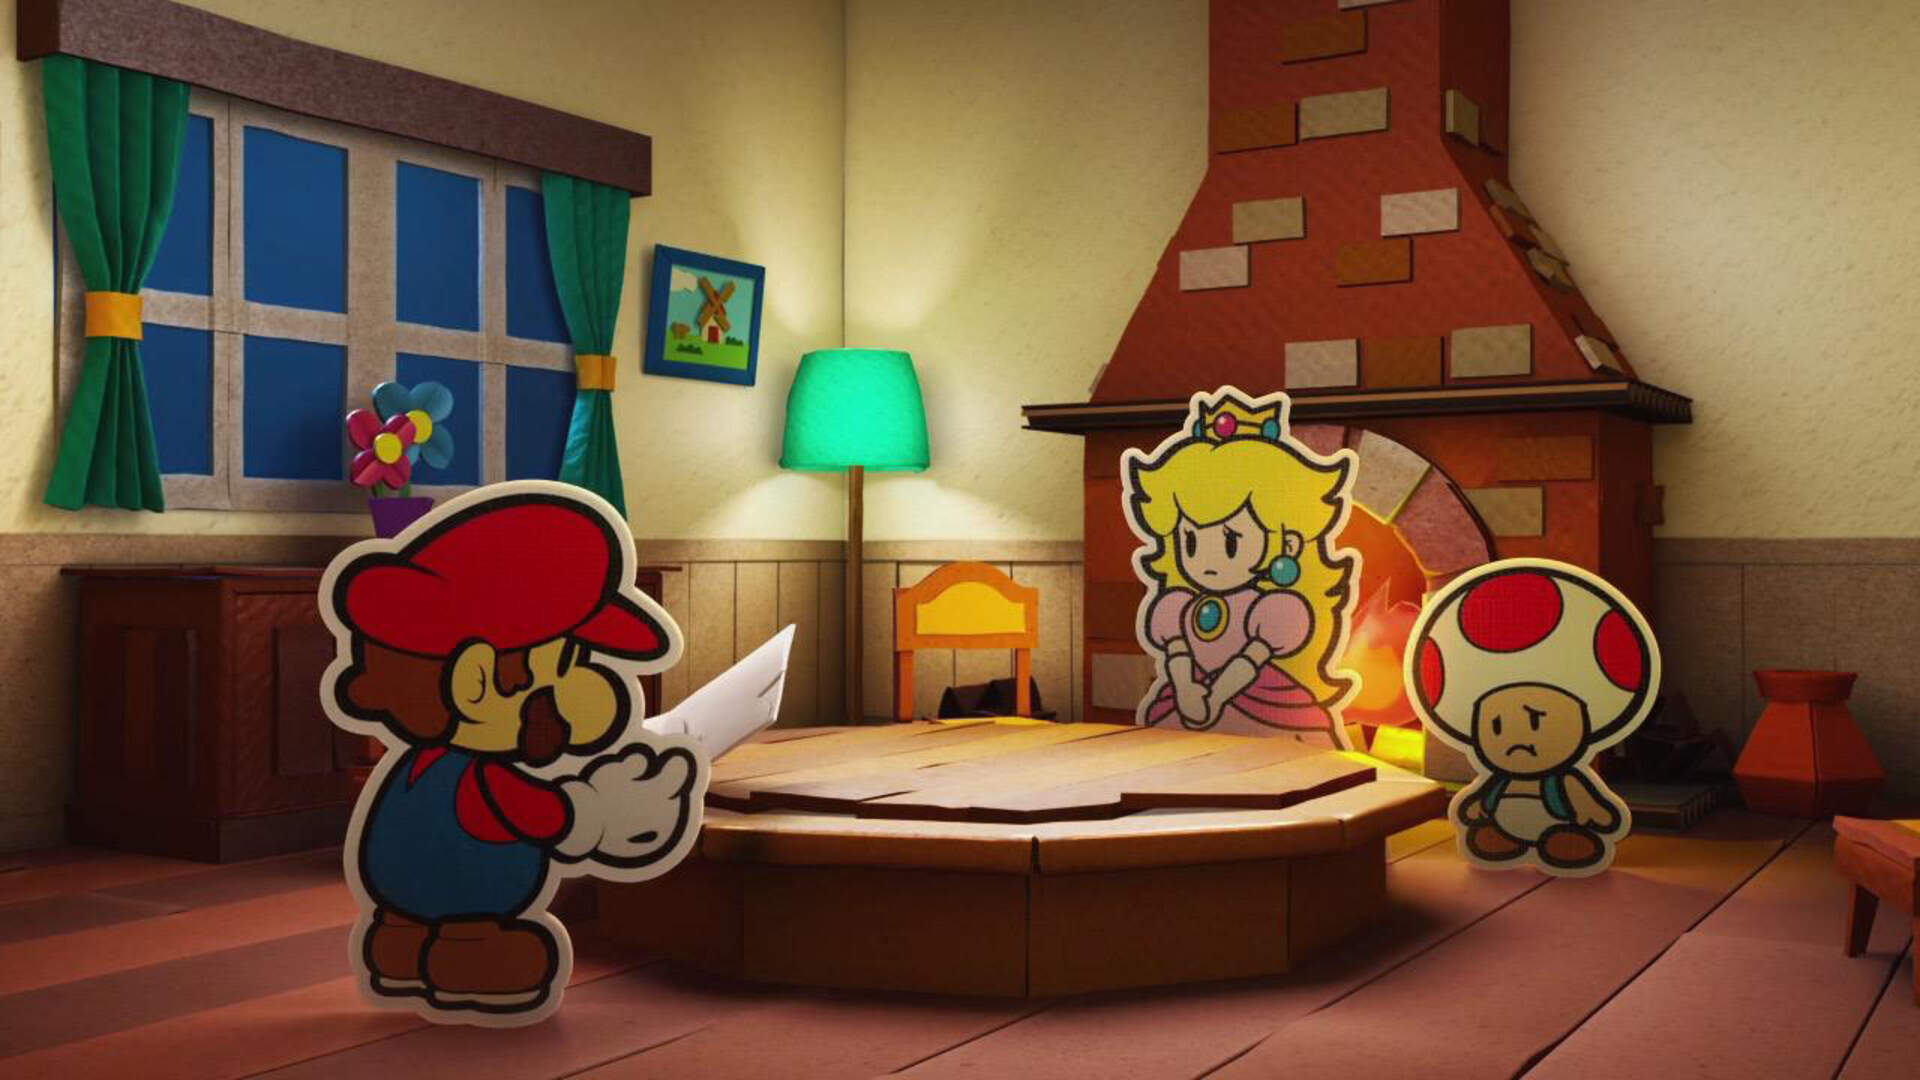 More Details About Super Mario Switch Remasters and New Paper Mario Surface